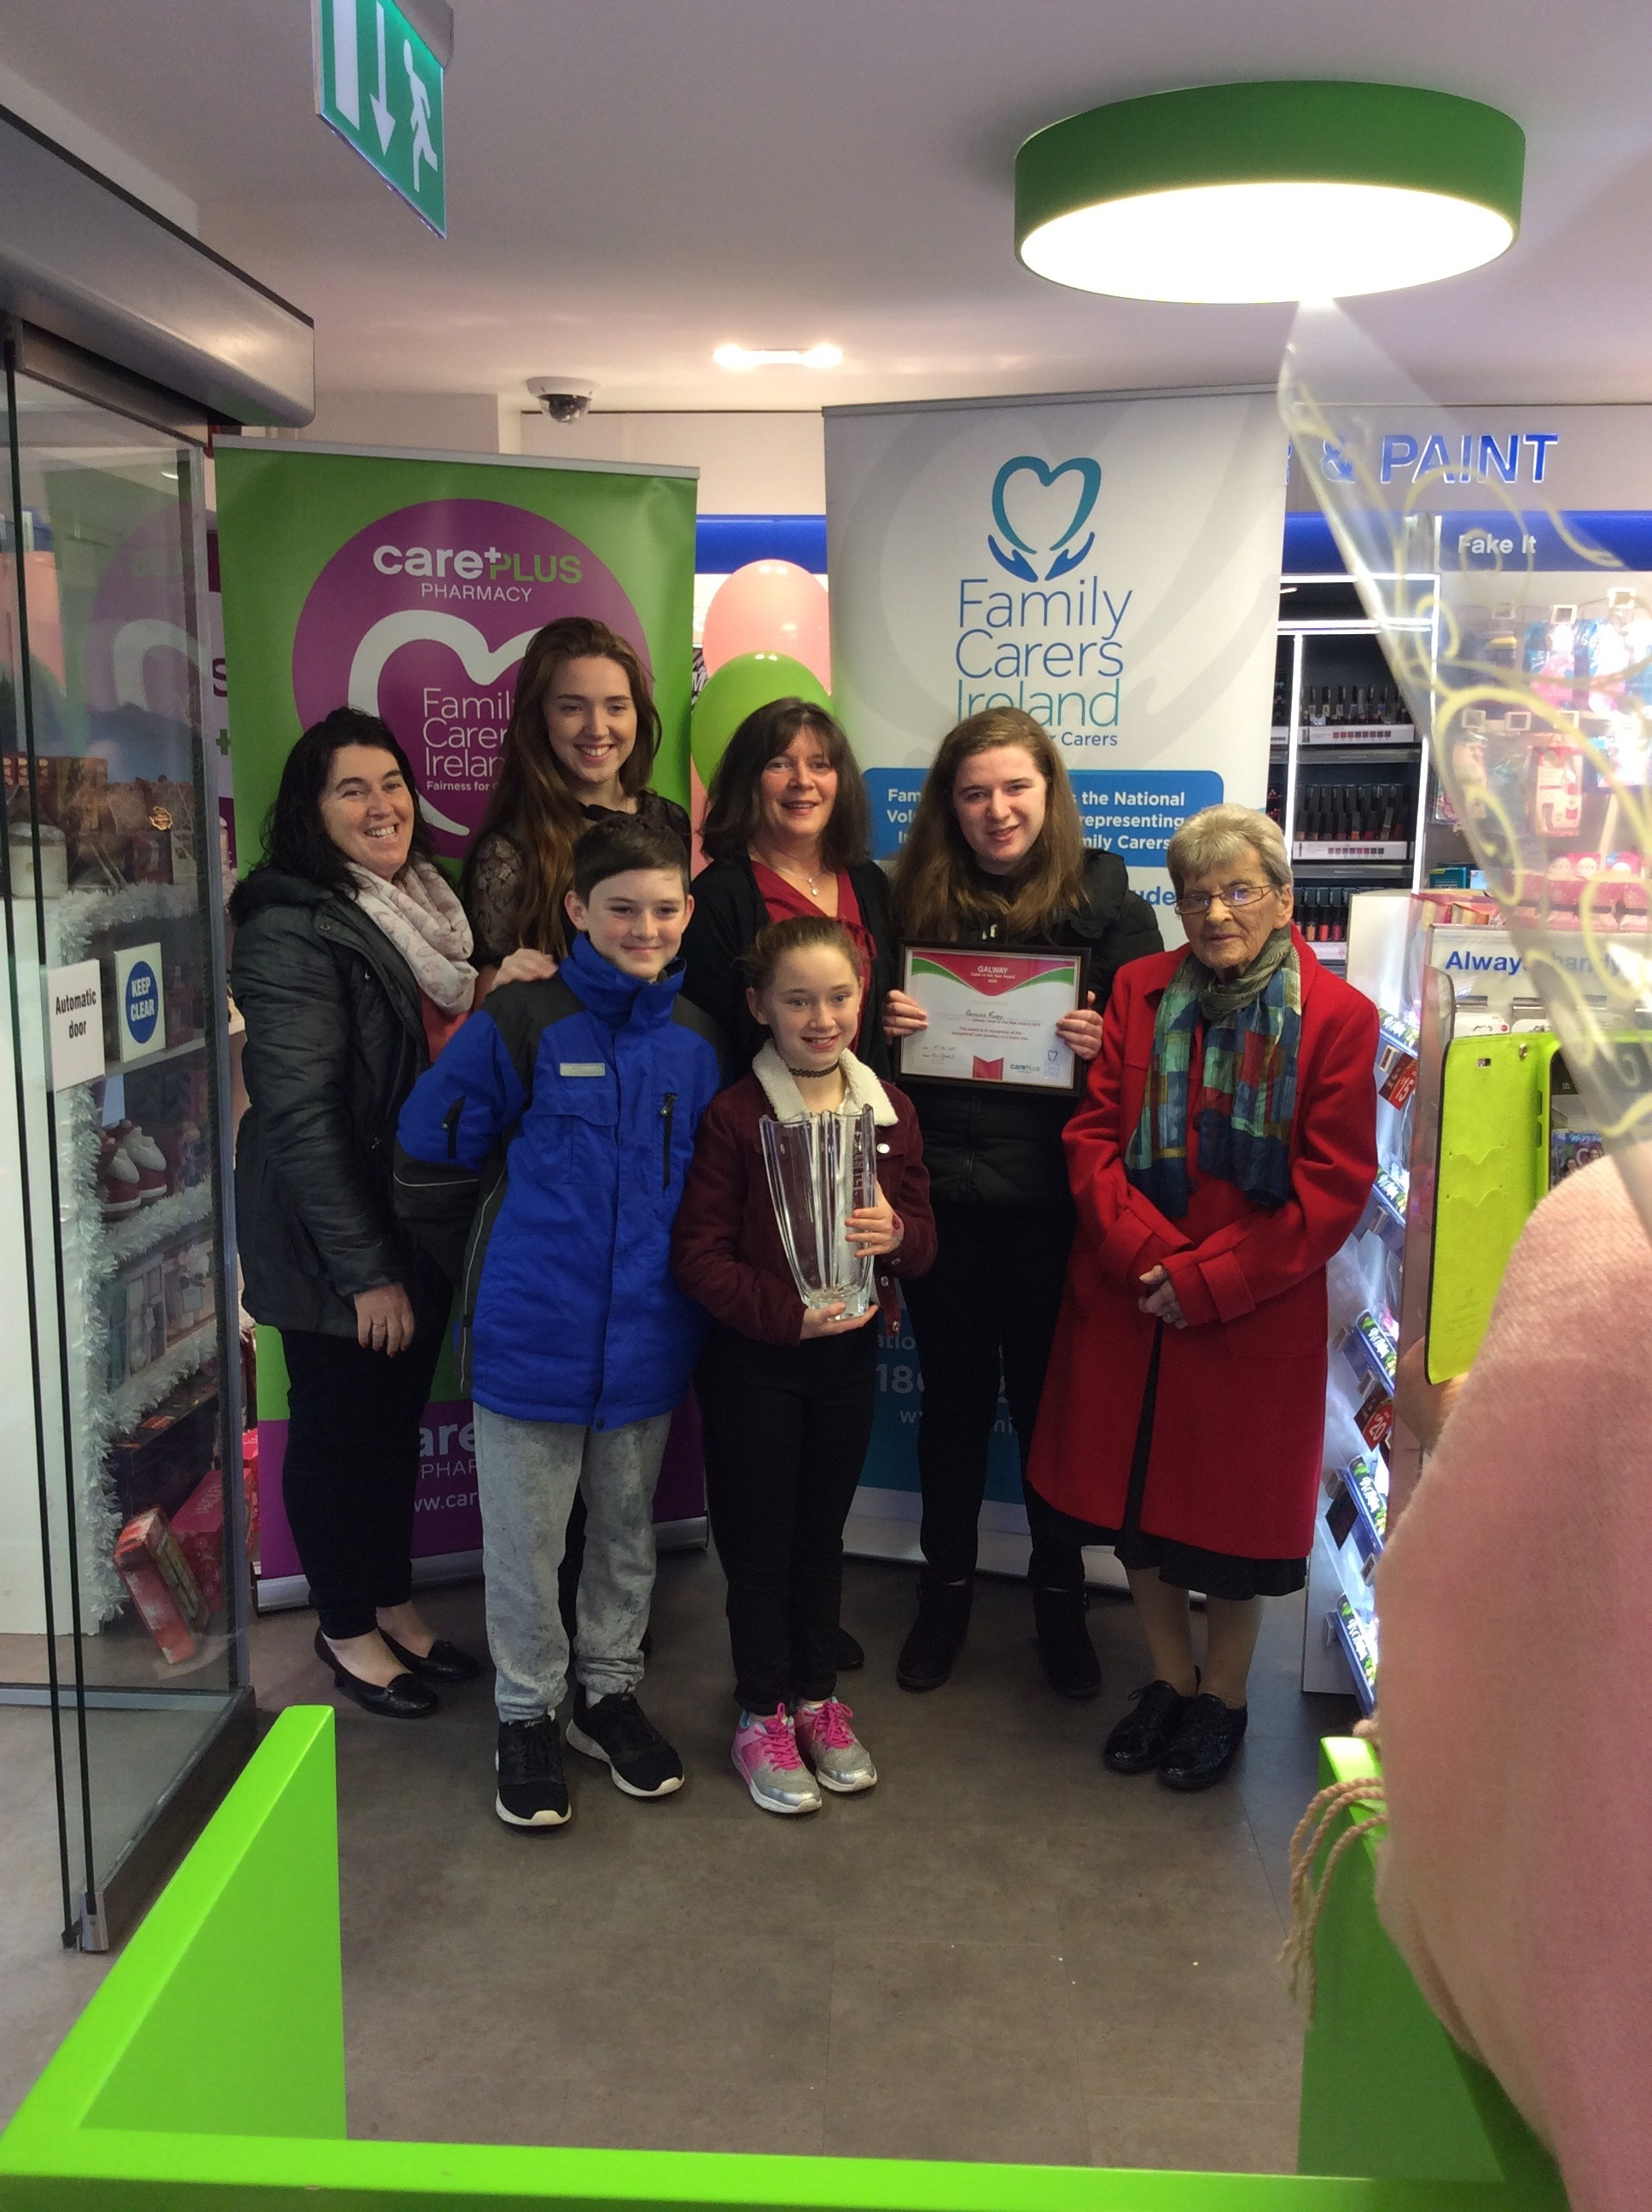 Adrienne Furey and her Family being awarded Galway Carer of the Year at Killian's CarePlus Pharmacy, Loughrea, Co. Galway